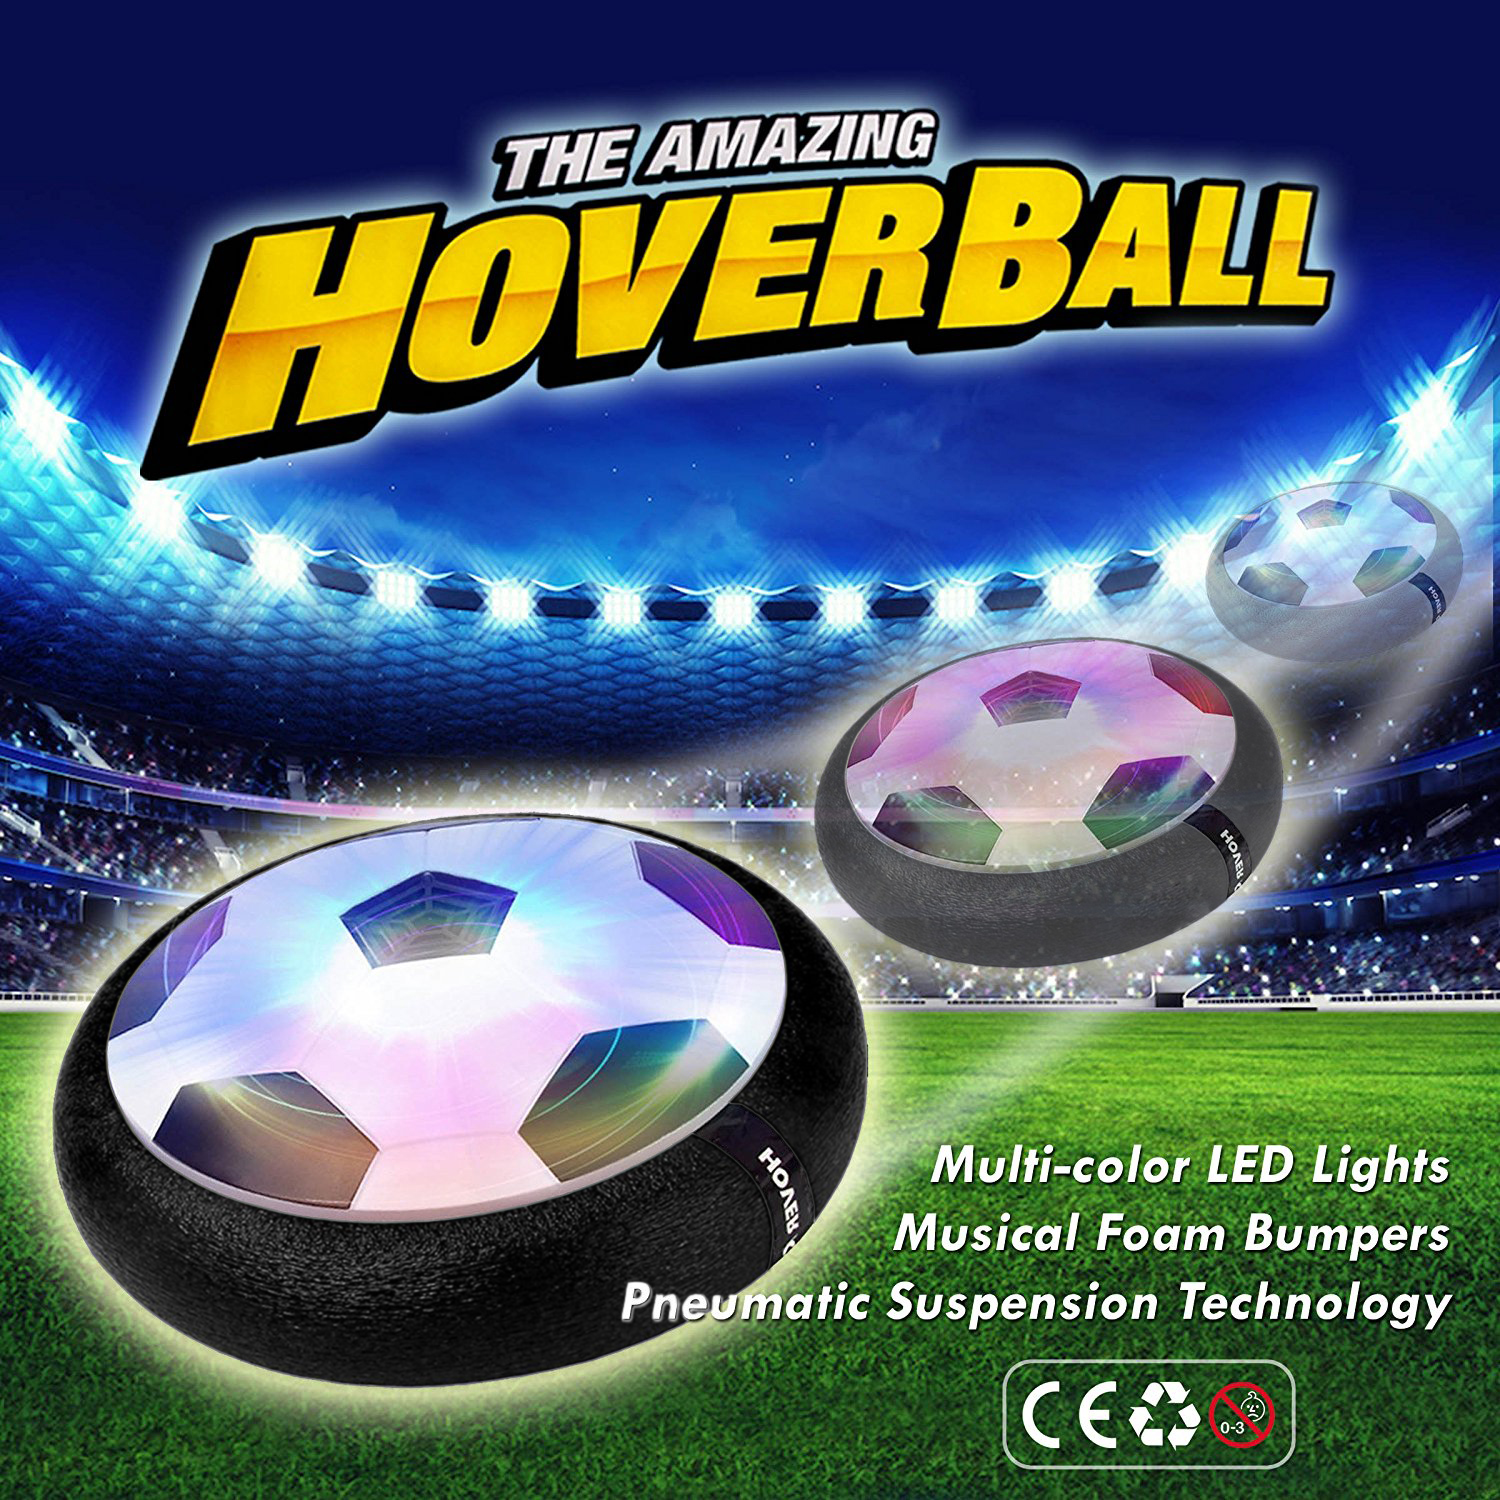 Indoor Toy HOVER BALL, 2-in-1 Hockey Puck or Soccer ball Football Glides with Battery... by